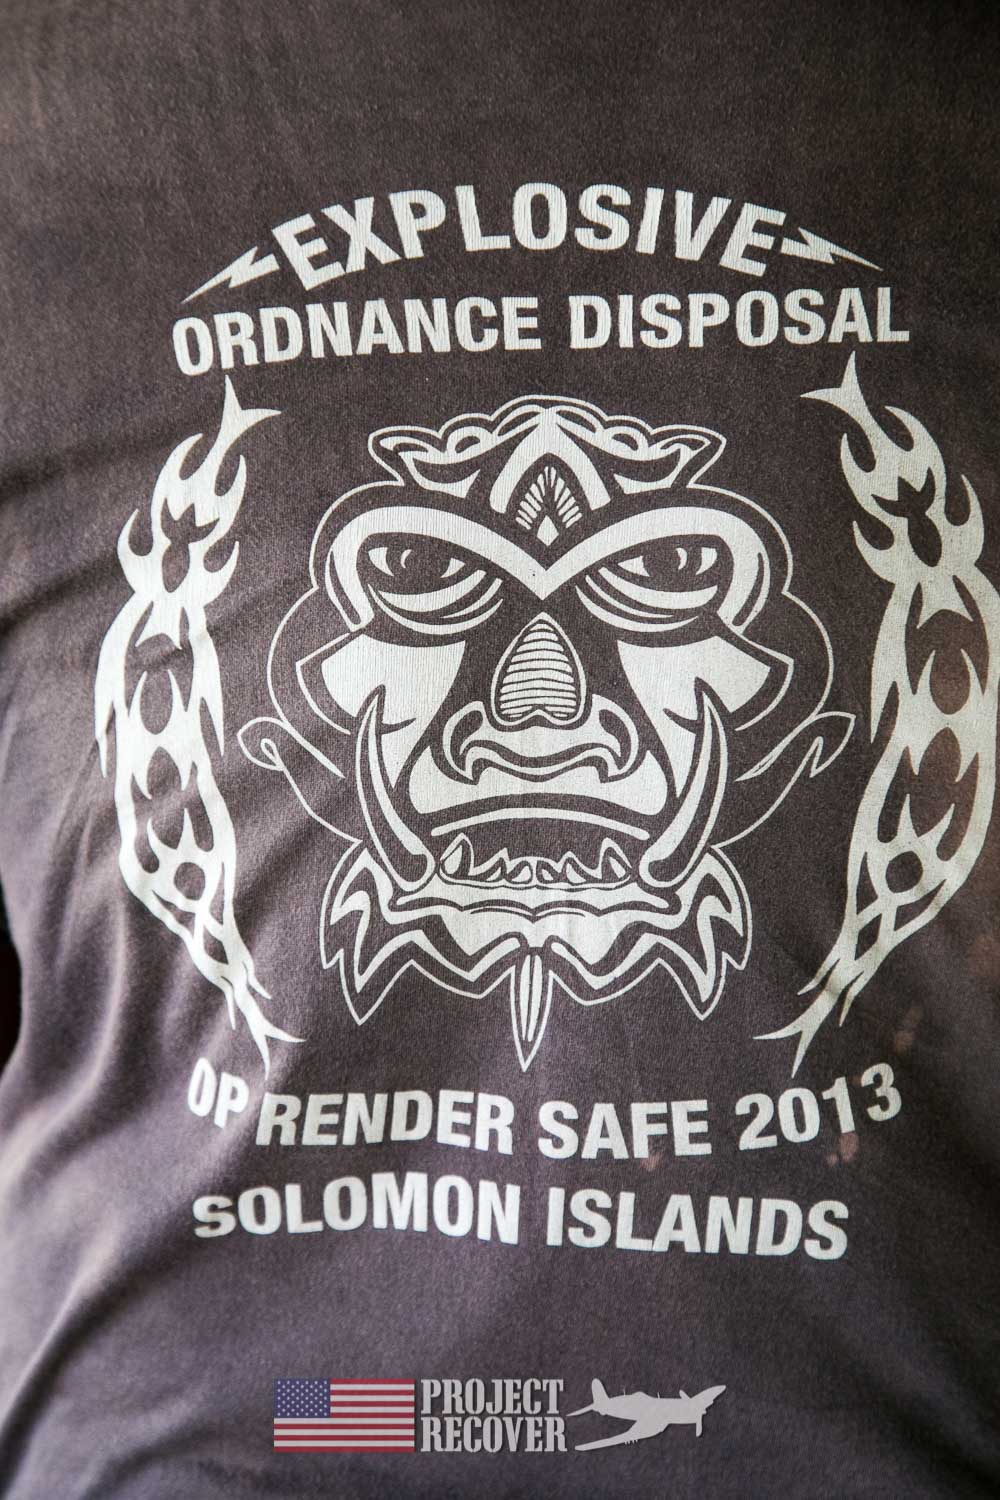 Team TShirt Honiara EOD - Hells Point - Nose gunners view Japanese WWII bomber - Vilu War Museum - Honiara - while looking to find Solomon Islands MIAs - Project Recover and BentProp Project are committed to bringing the MIA home. Photos by Harry Parker Photography.com